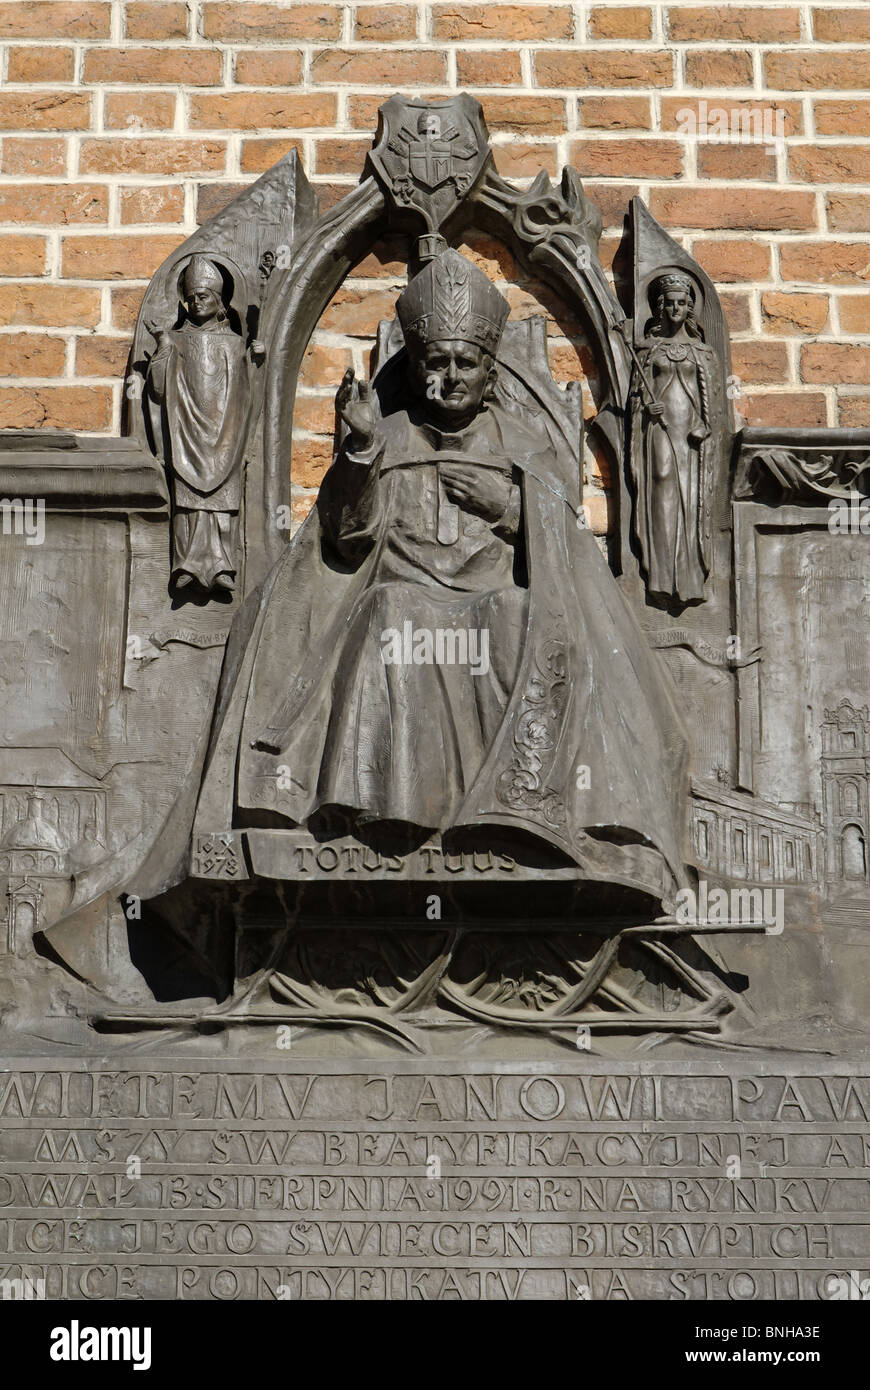 Commemorative table pope Johannes Paul II Krakow Cracow Poland Europe old Old Town building sculpture statue monument - Stock Image